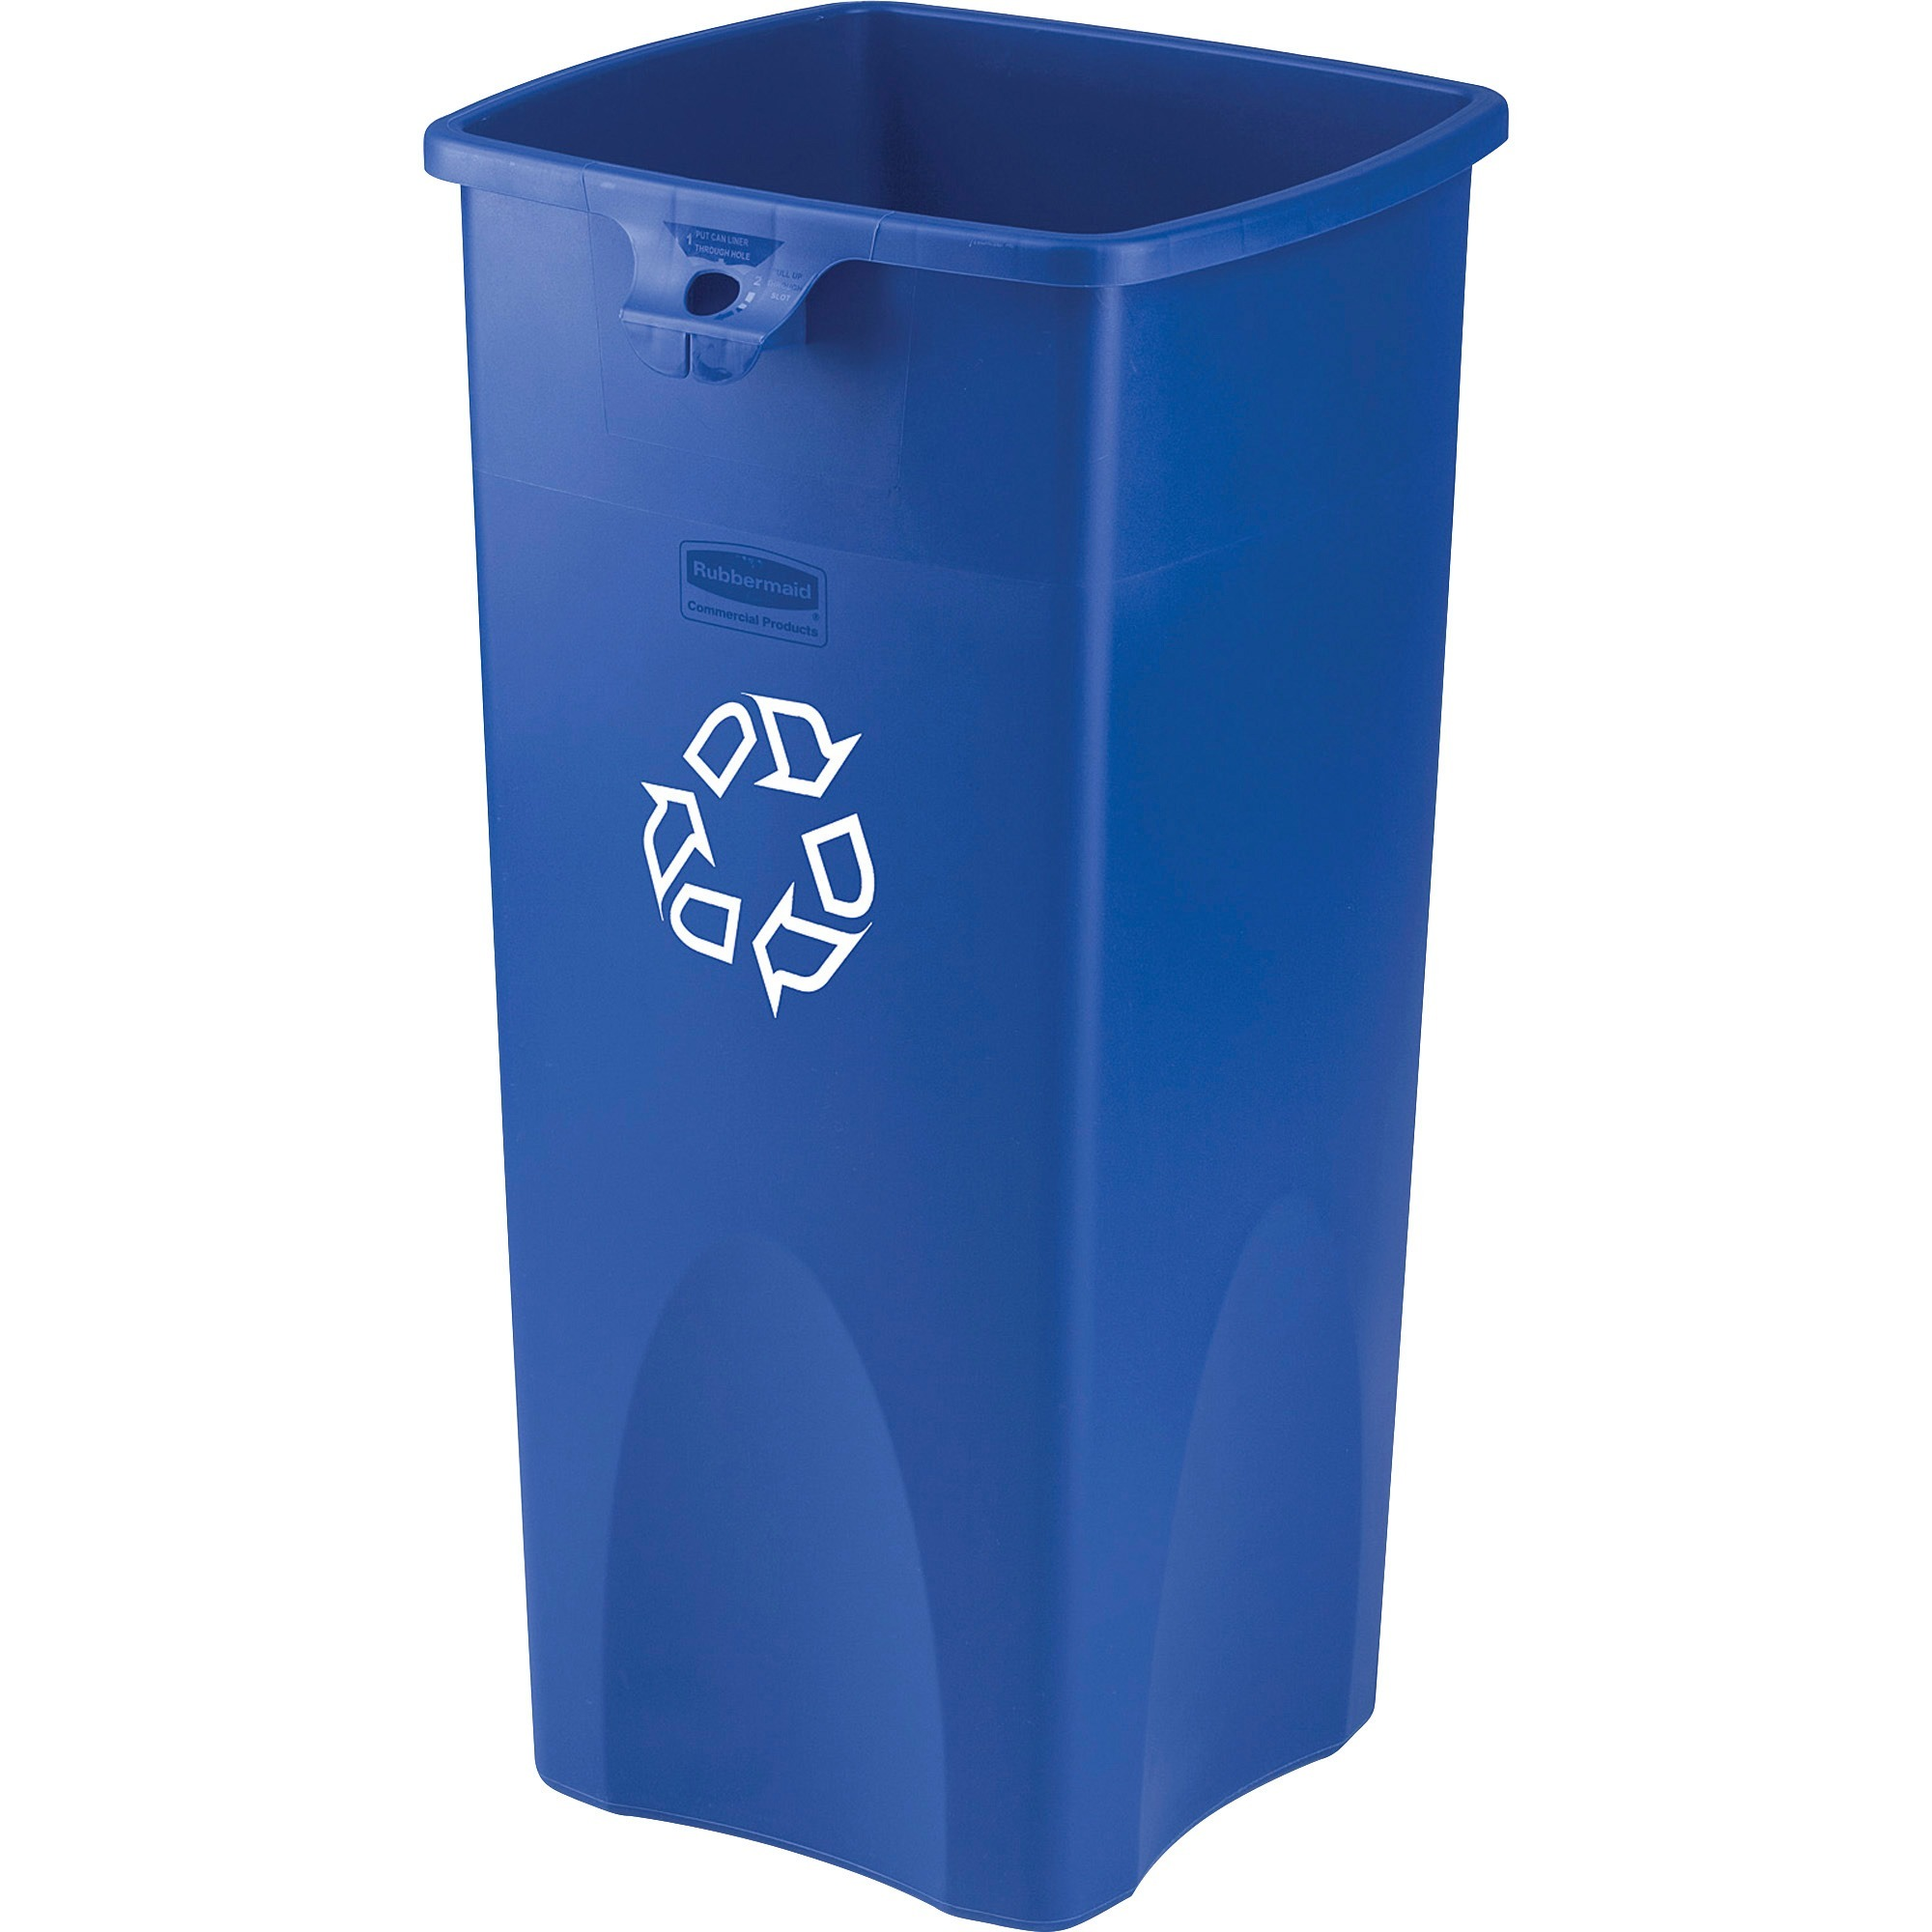 Rubbermaid Commercial, RCP356973BE, Square Recycling Container, 1, Blue